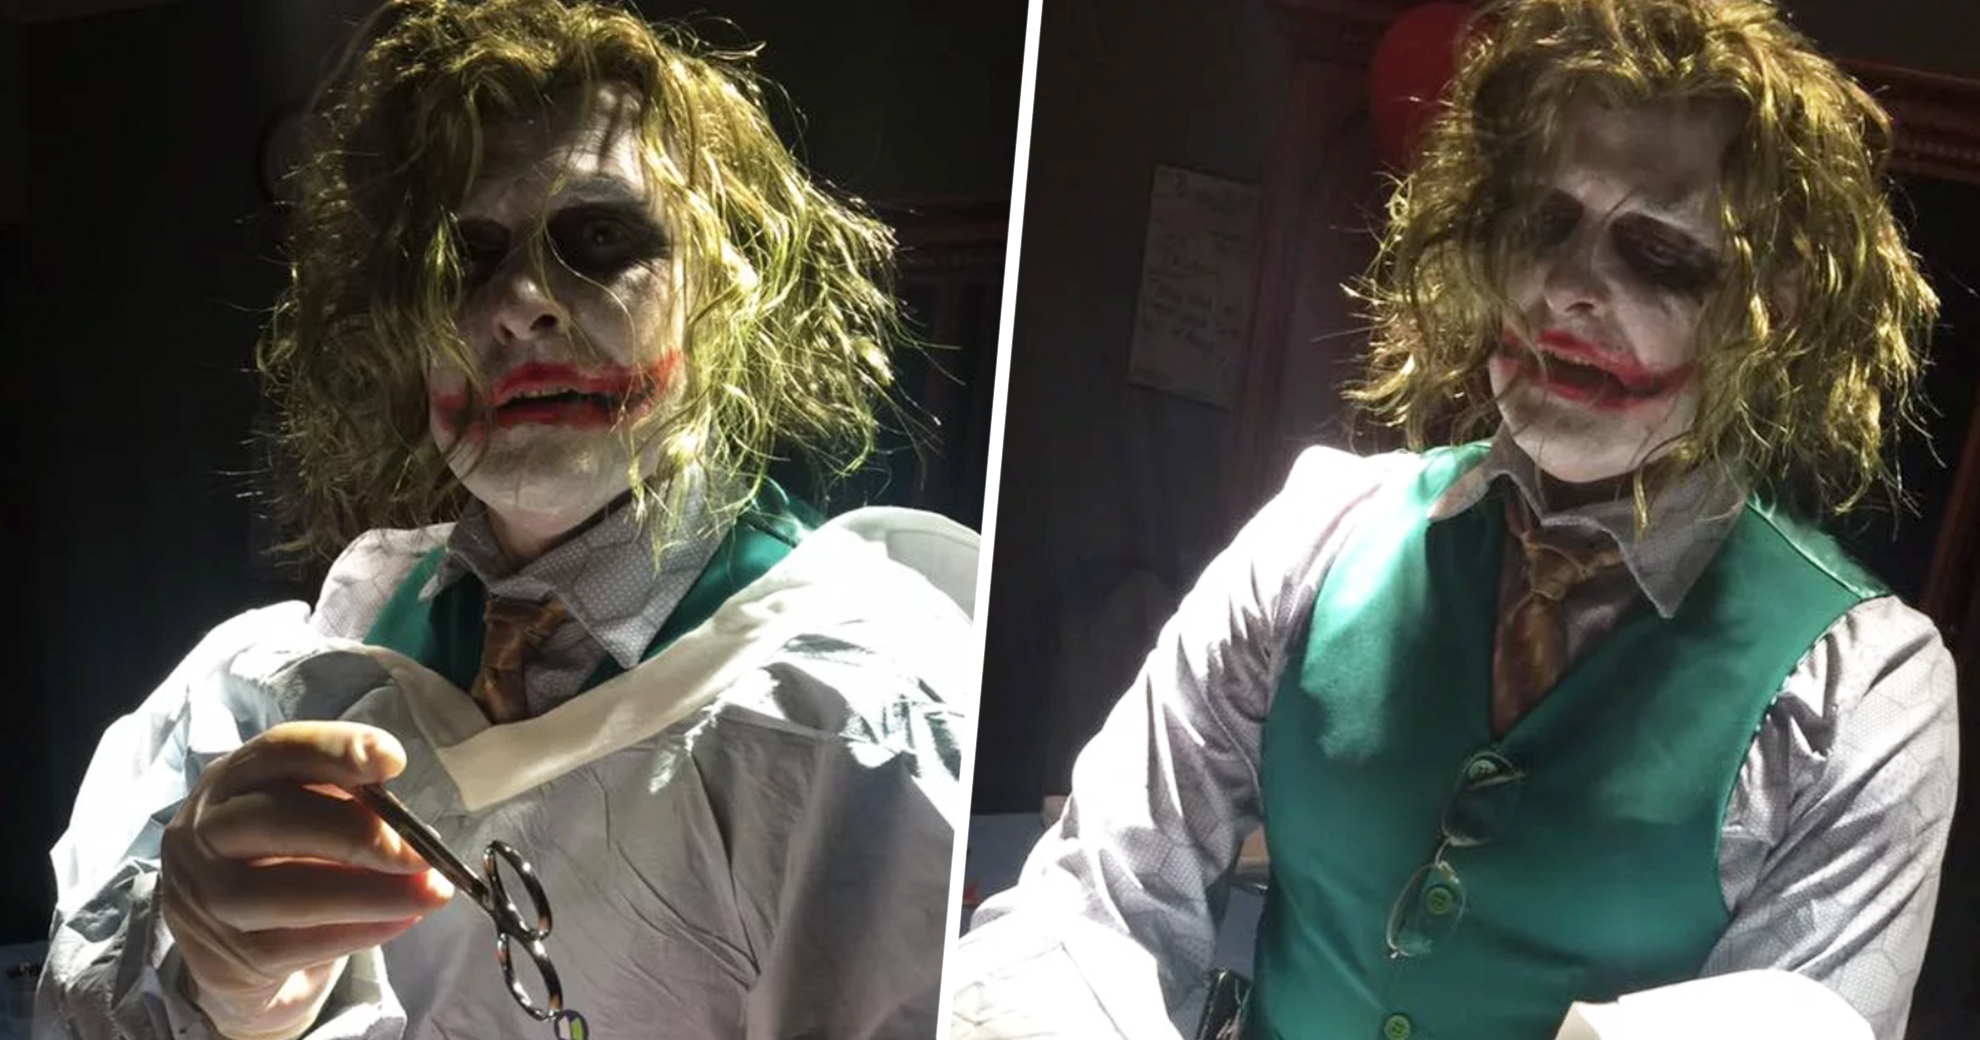 This Doctor Dressed As The Joker To Deliver A Halloween Baby